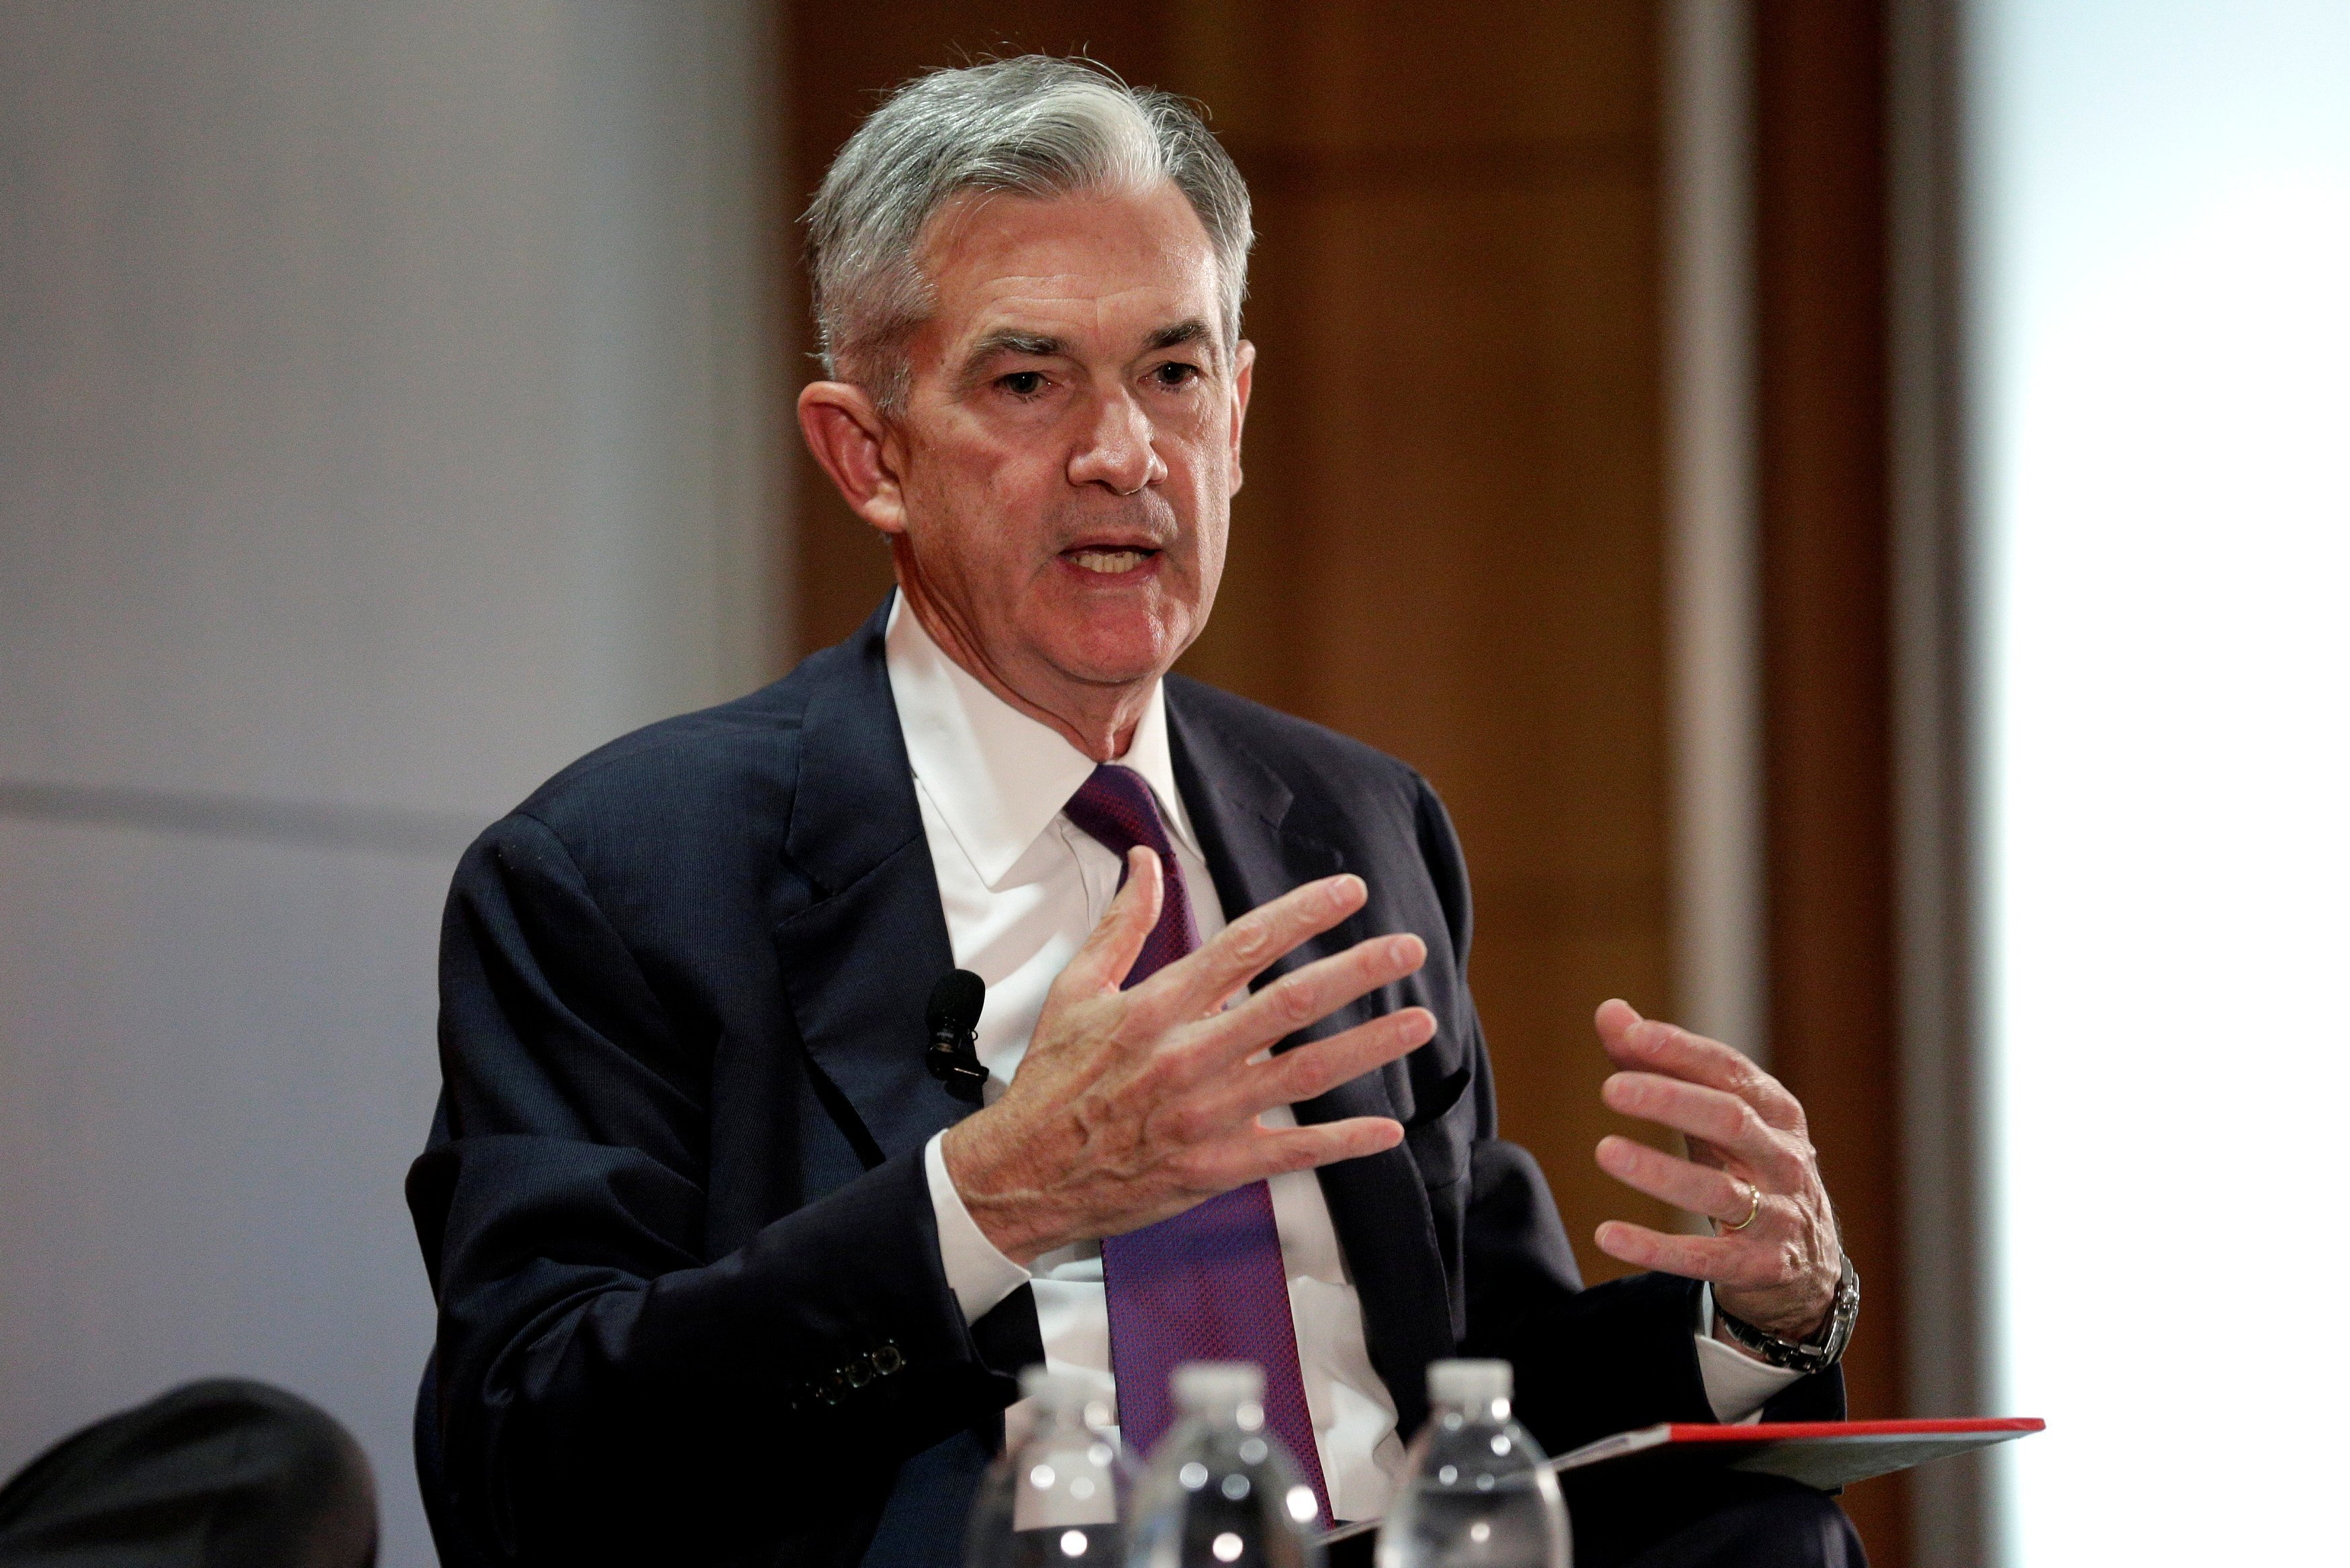 Federal Reserve governor Jerome Powell